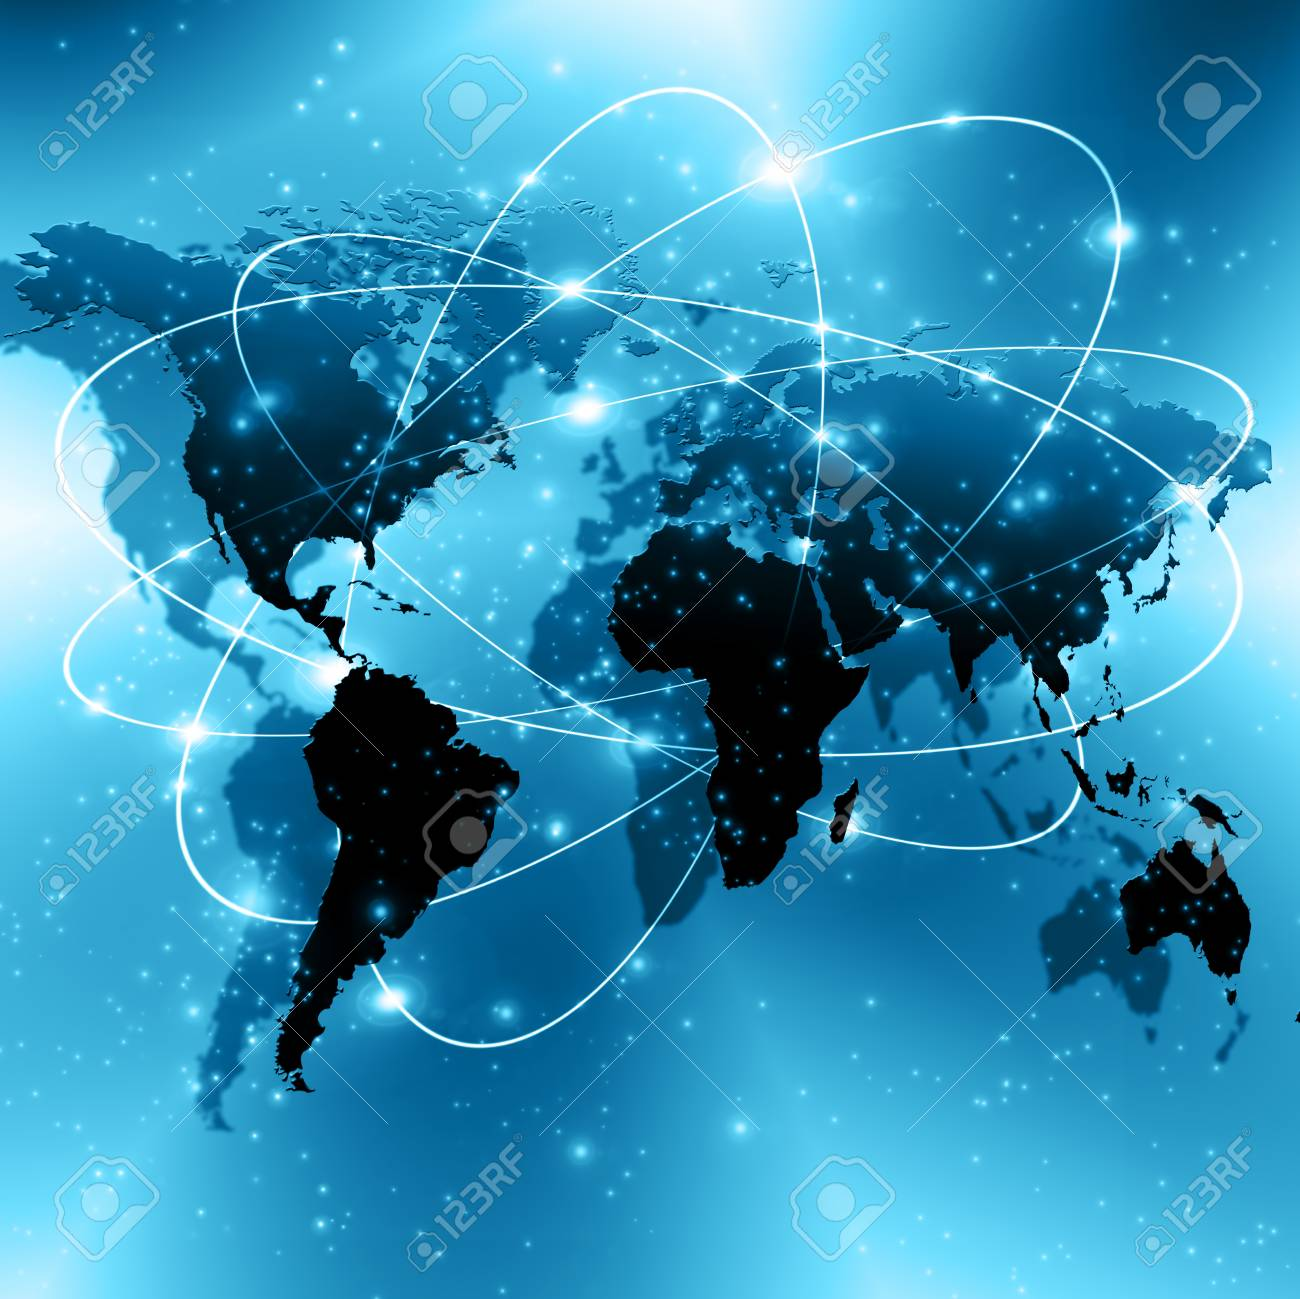 World map on a technological background glowing lines symbols stock photo world map on a technological background glowing lines symbols of the internet radio television mobile and satellite communications gumiabroncs Images